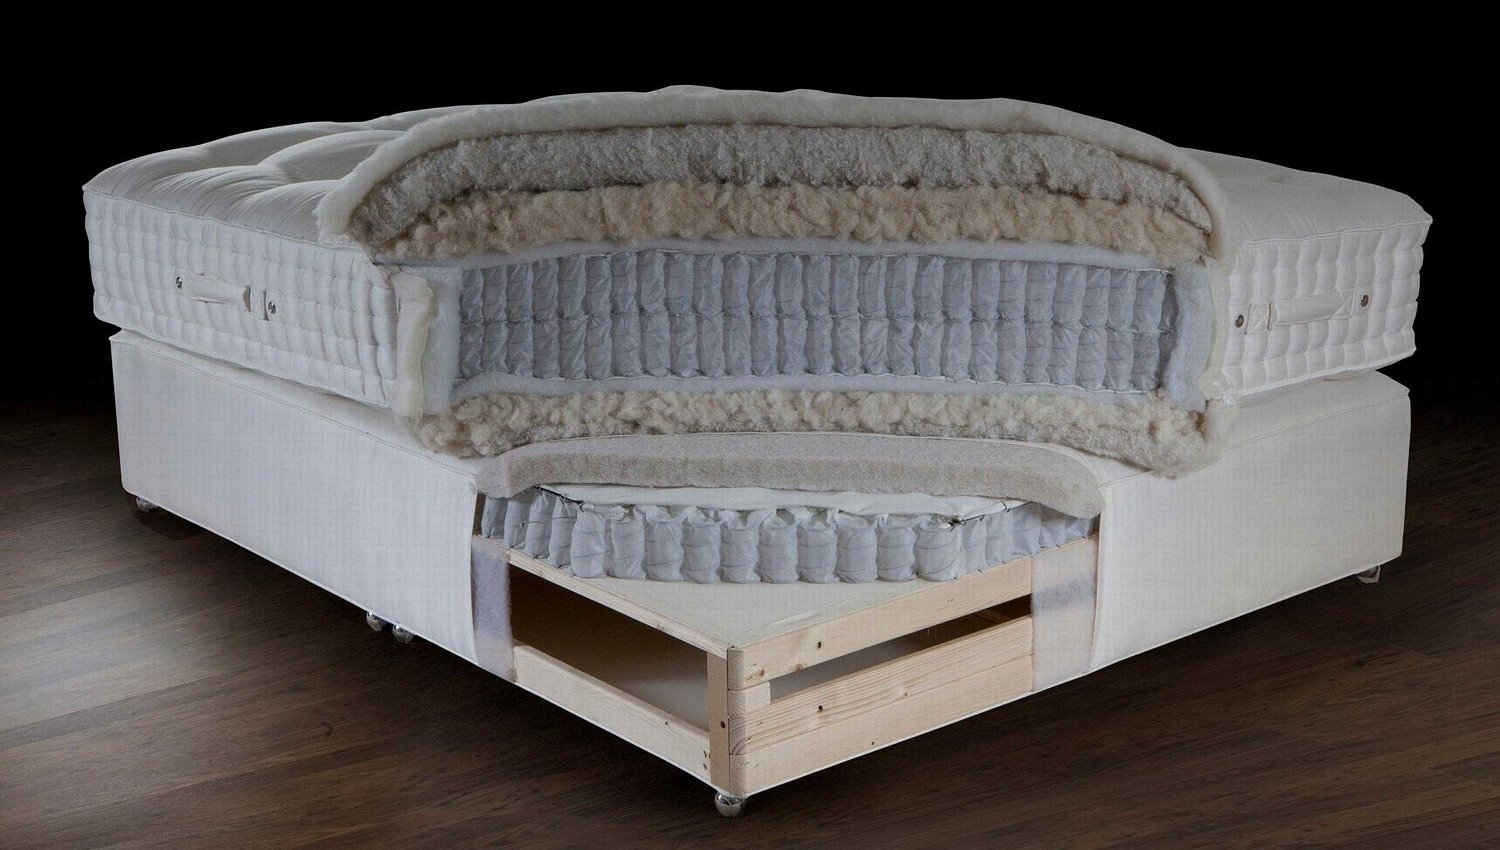 internal pocket sprung mattress